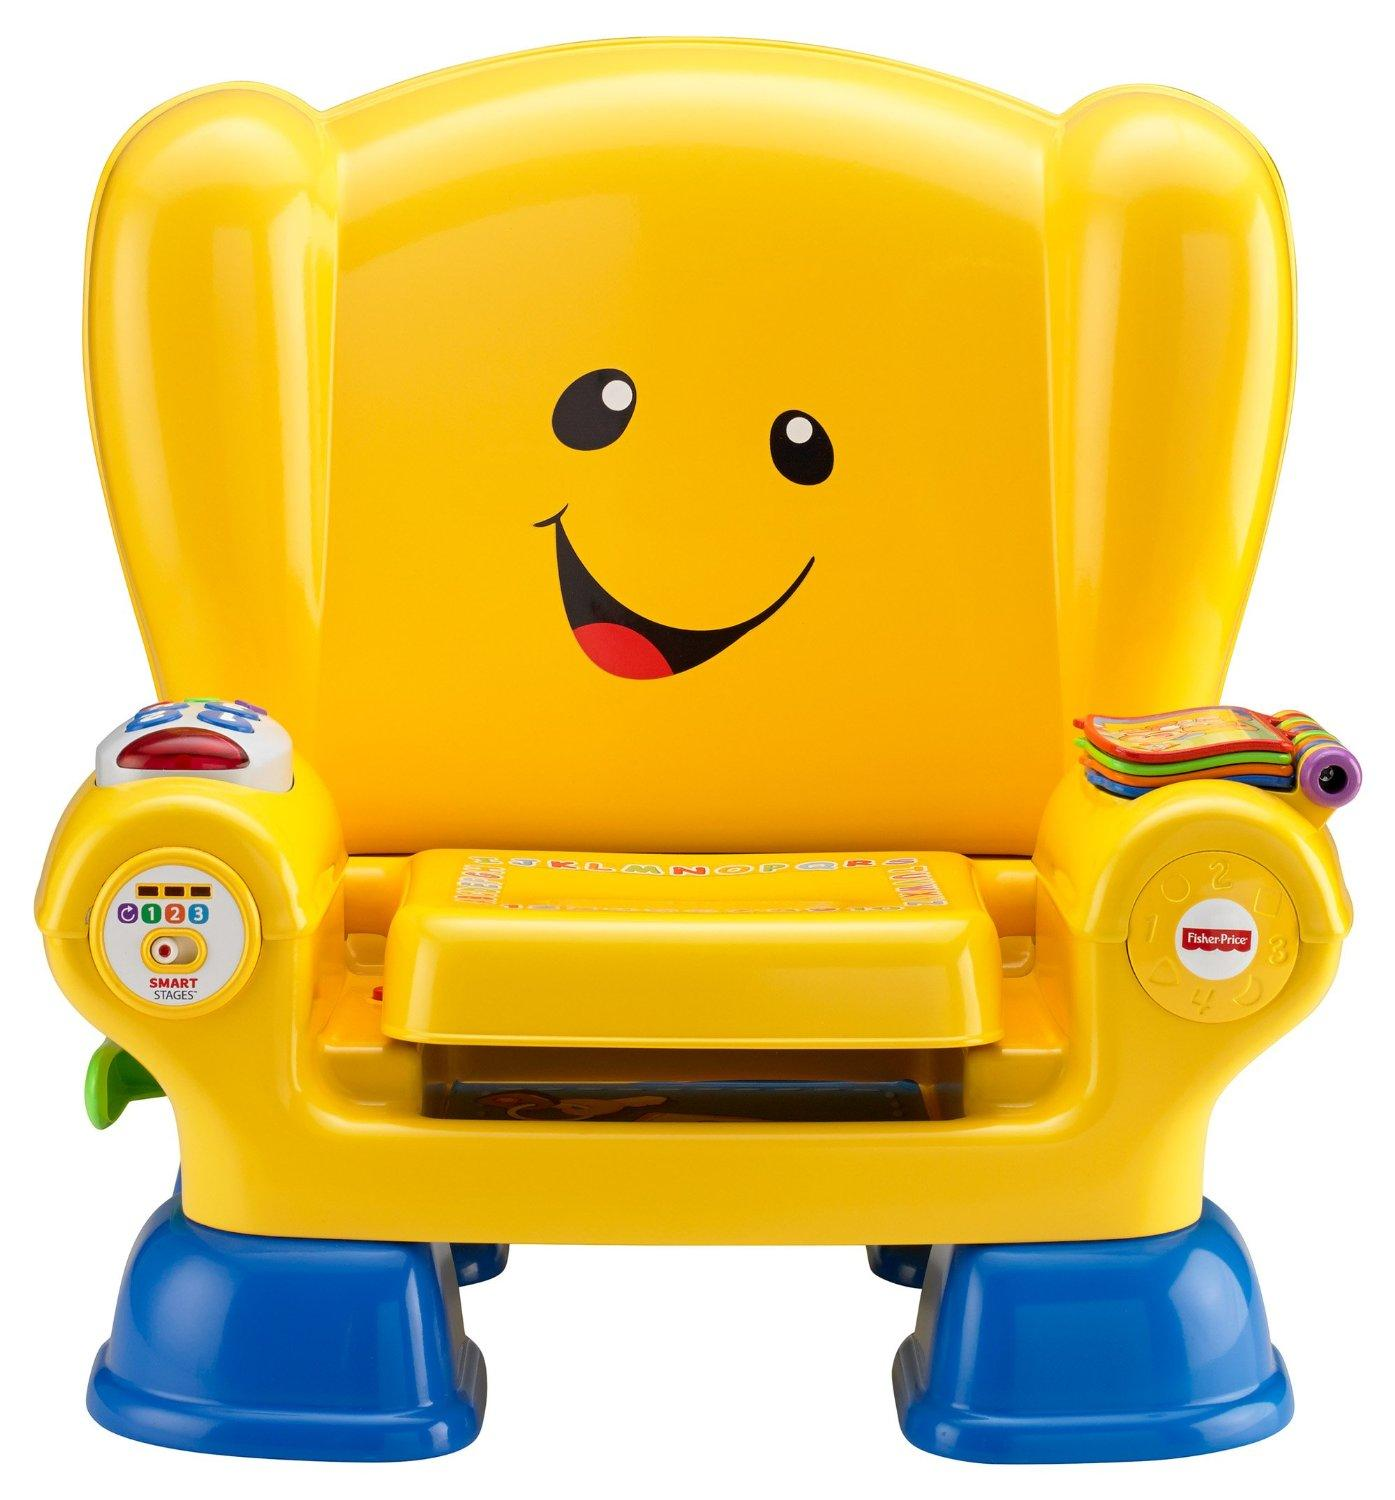 sit stand chair amazon resin wicker adirondack chairs amazon.com: fisher-price laugh & learn smart stages chair: toys games